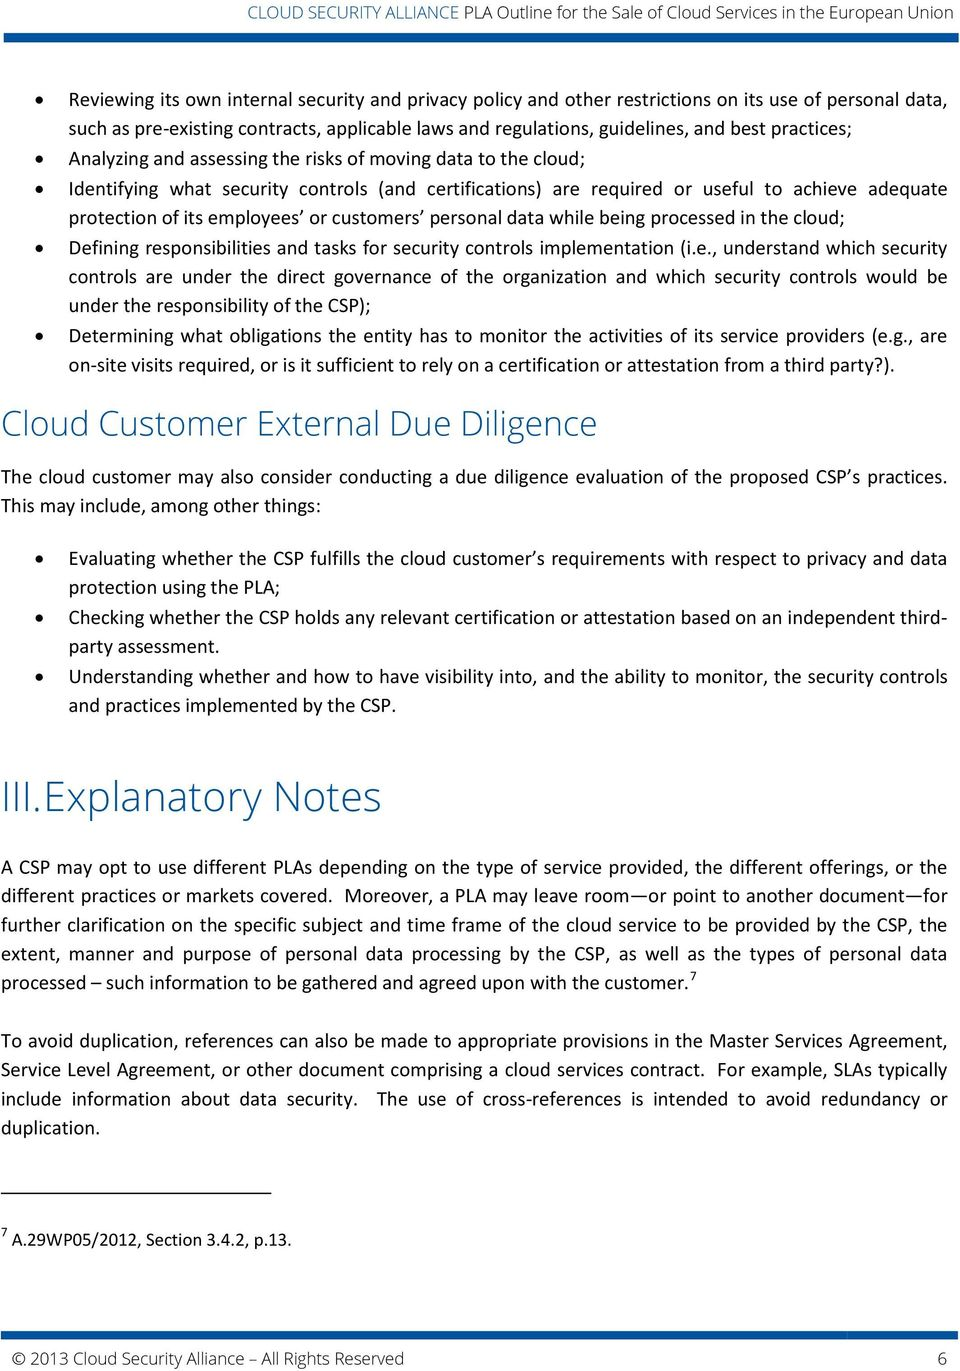 employees or customers personal data while being processed in the cloud; Defining responsibilities and tasks for security controls implementation (i.e., understand which security controls are under